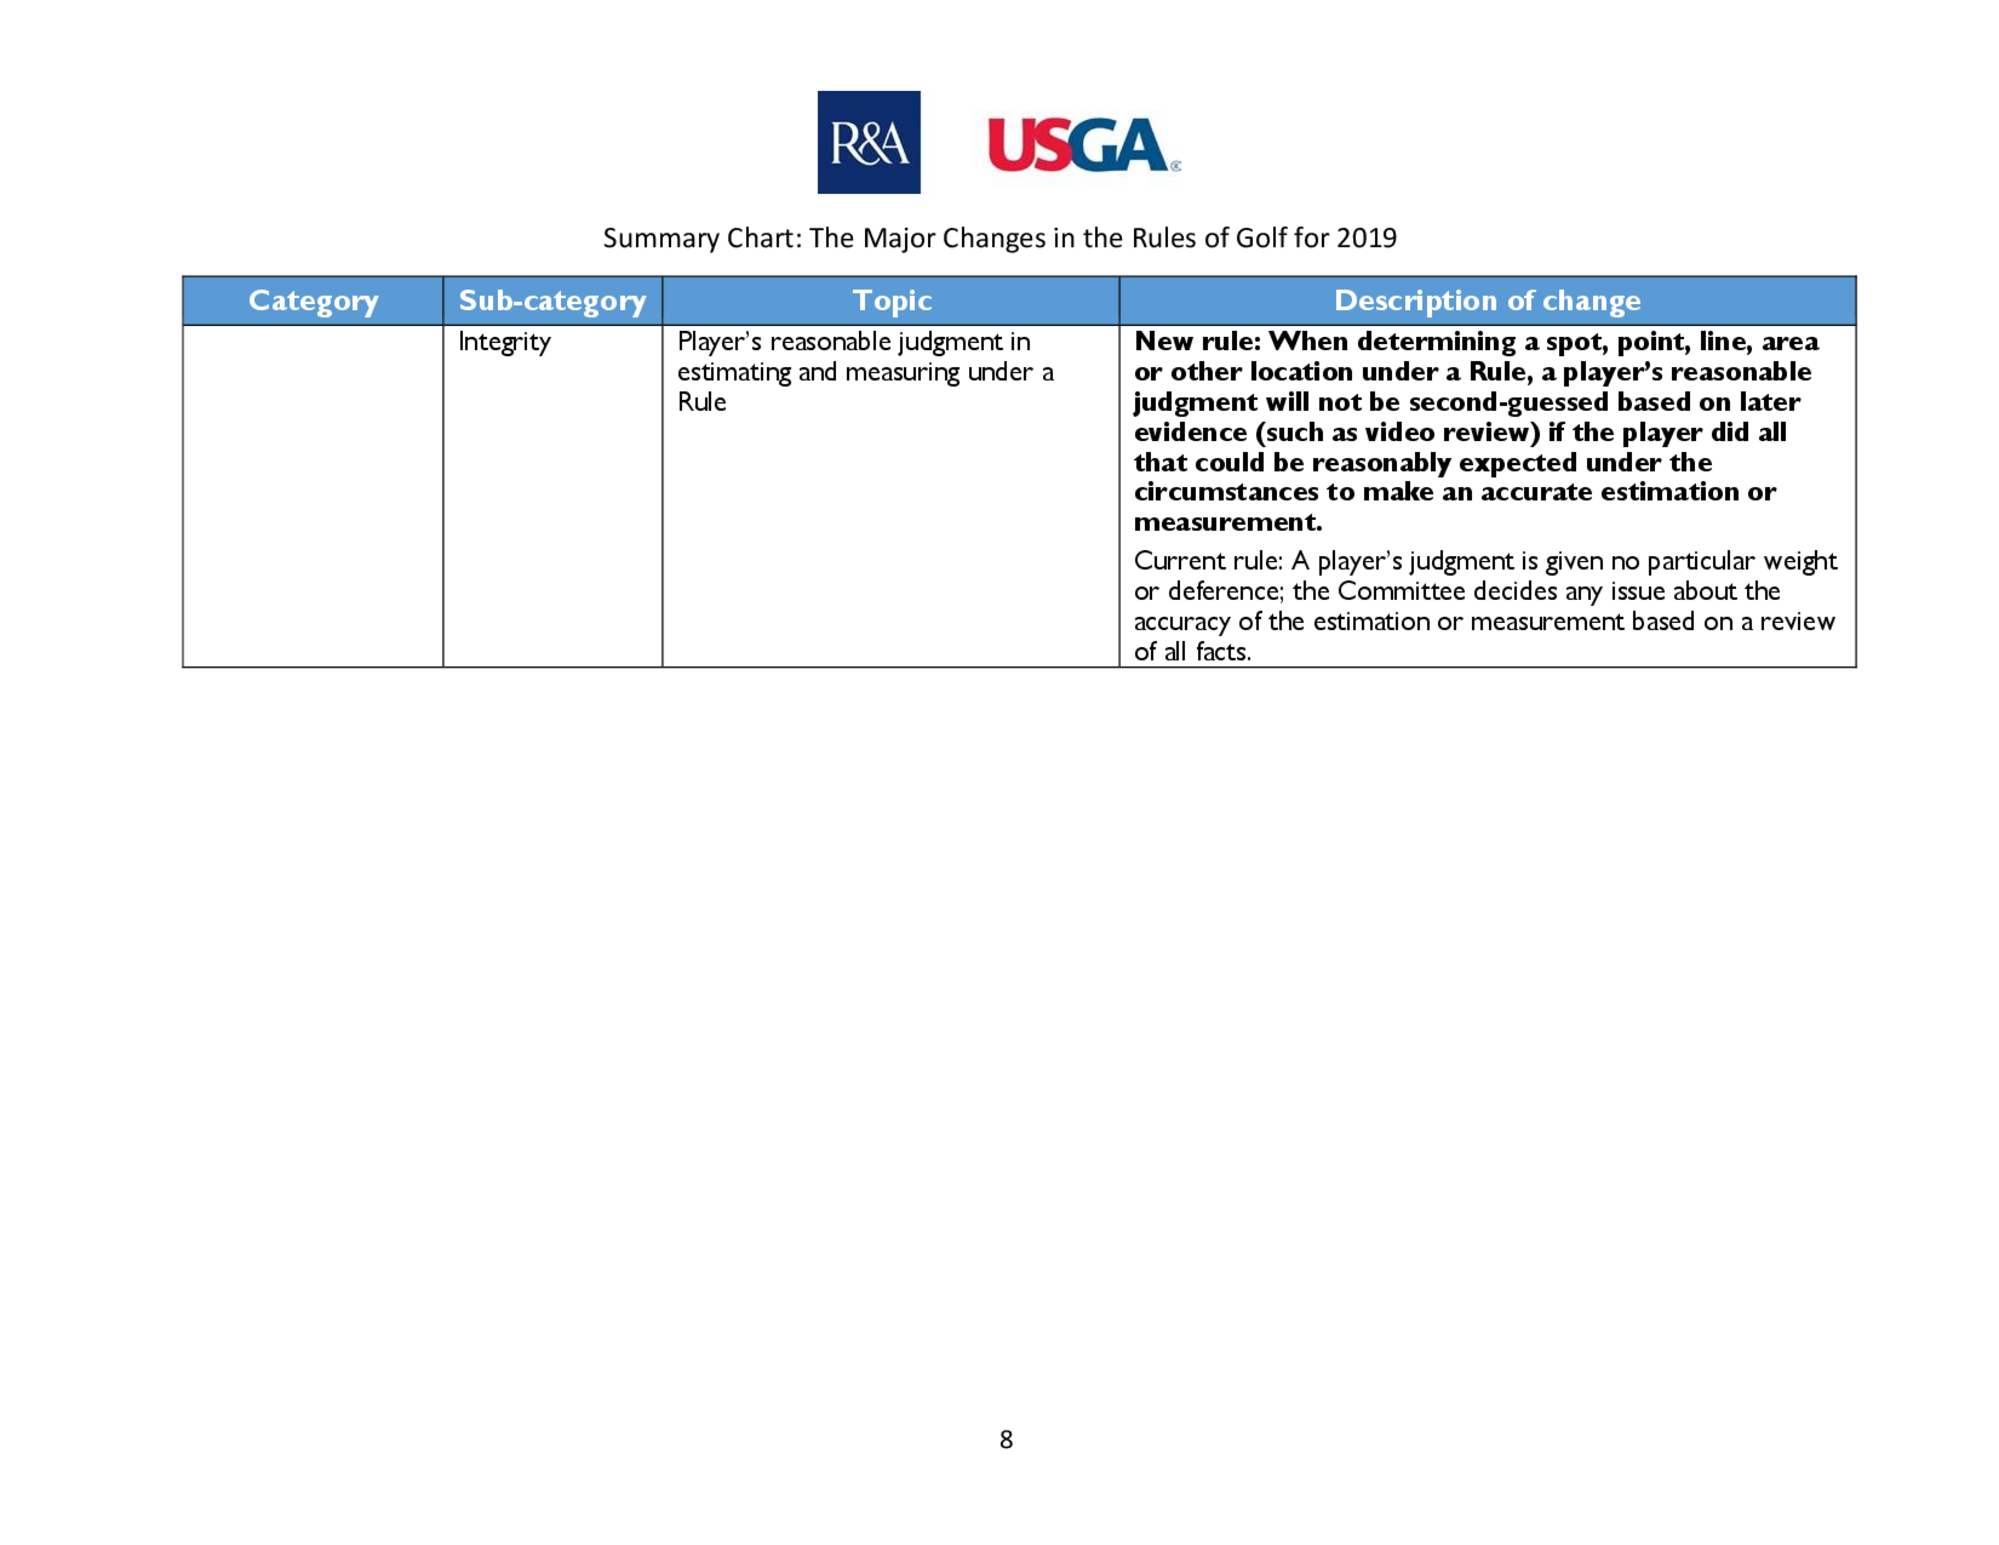 Summary of main changes 2019 rules of golf final  page 6 8   3